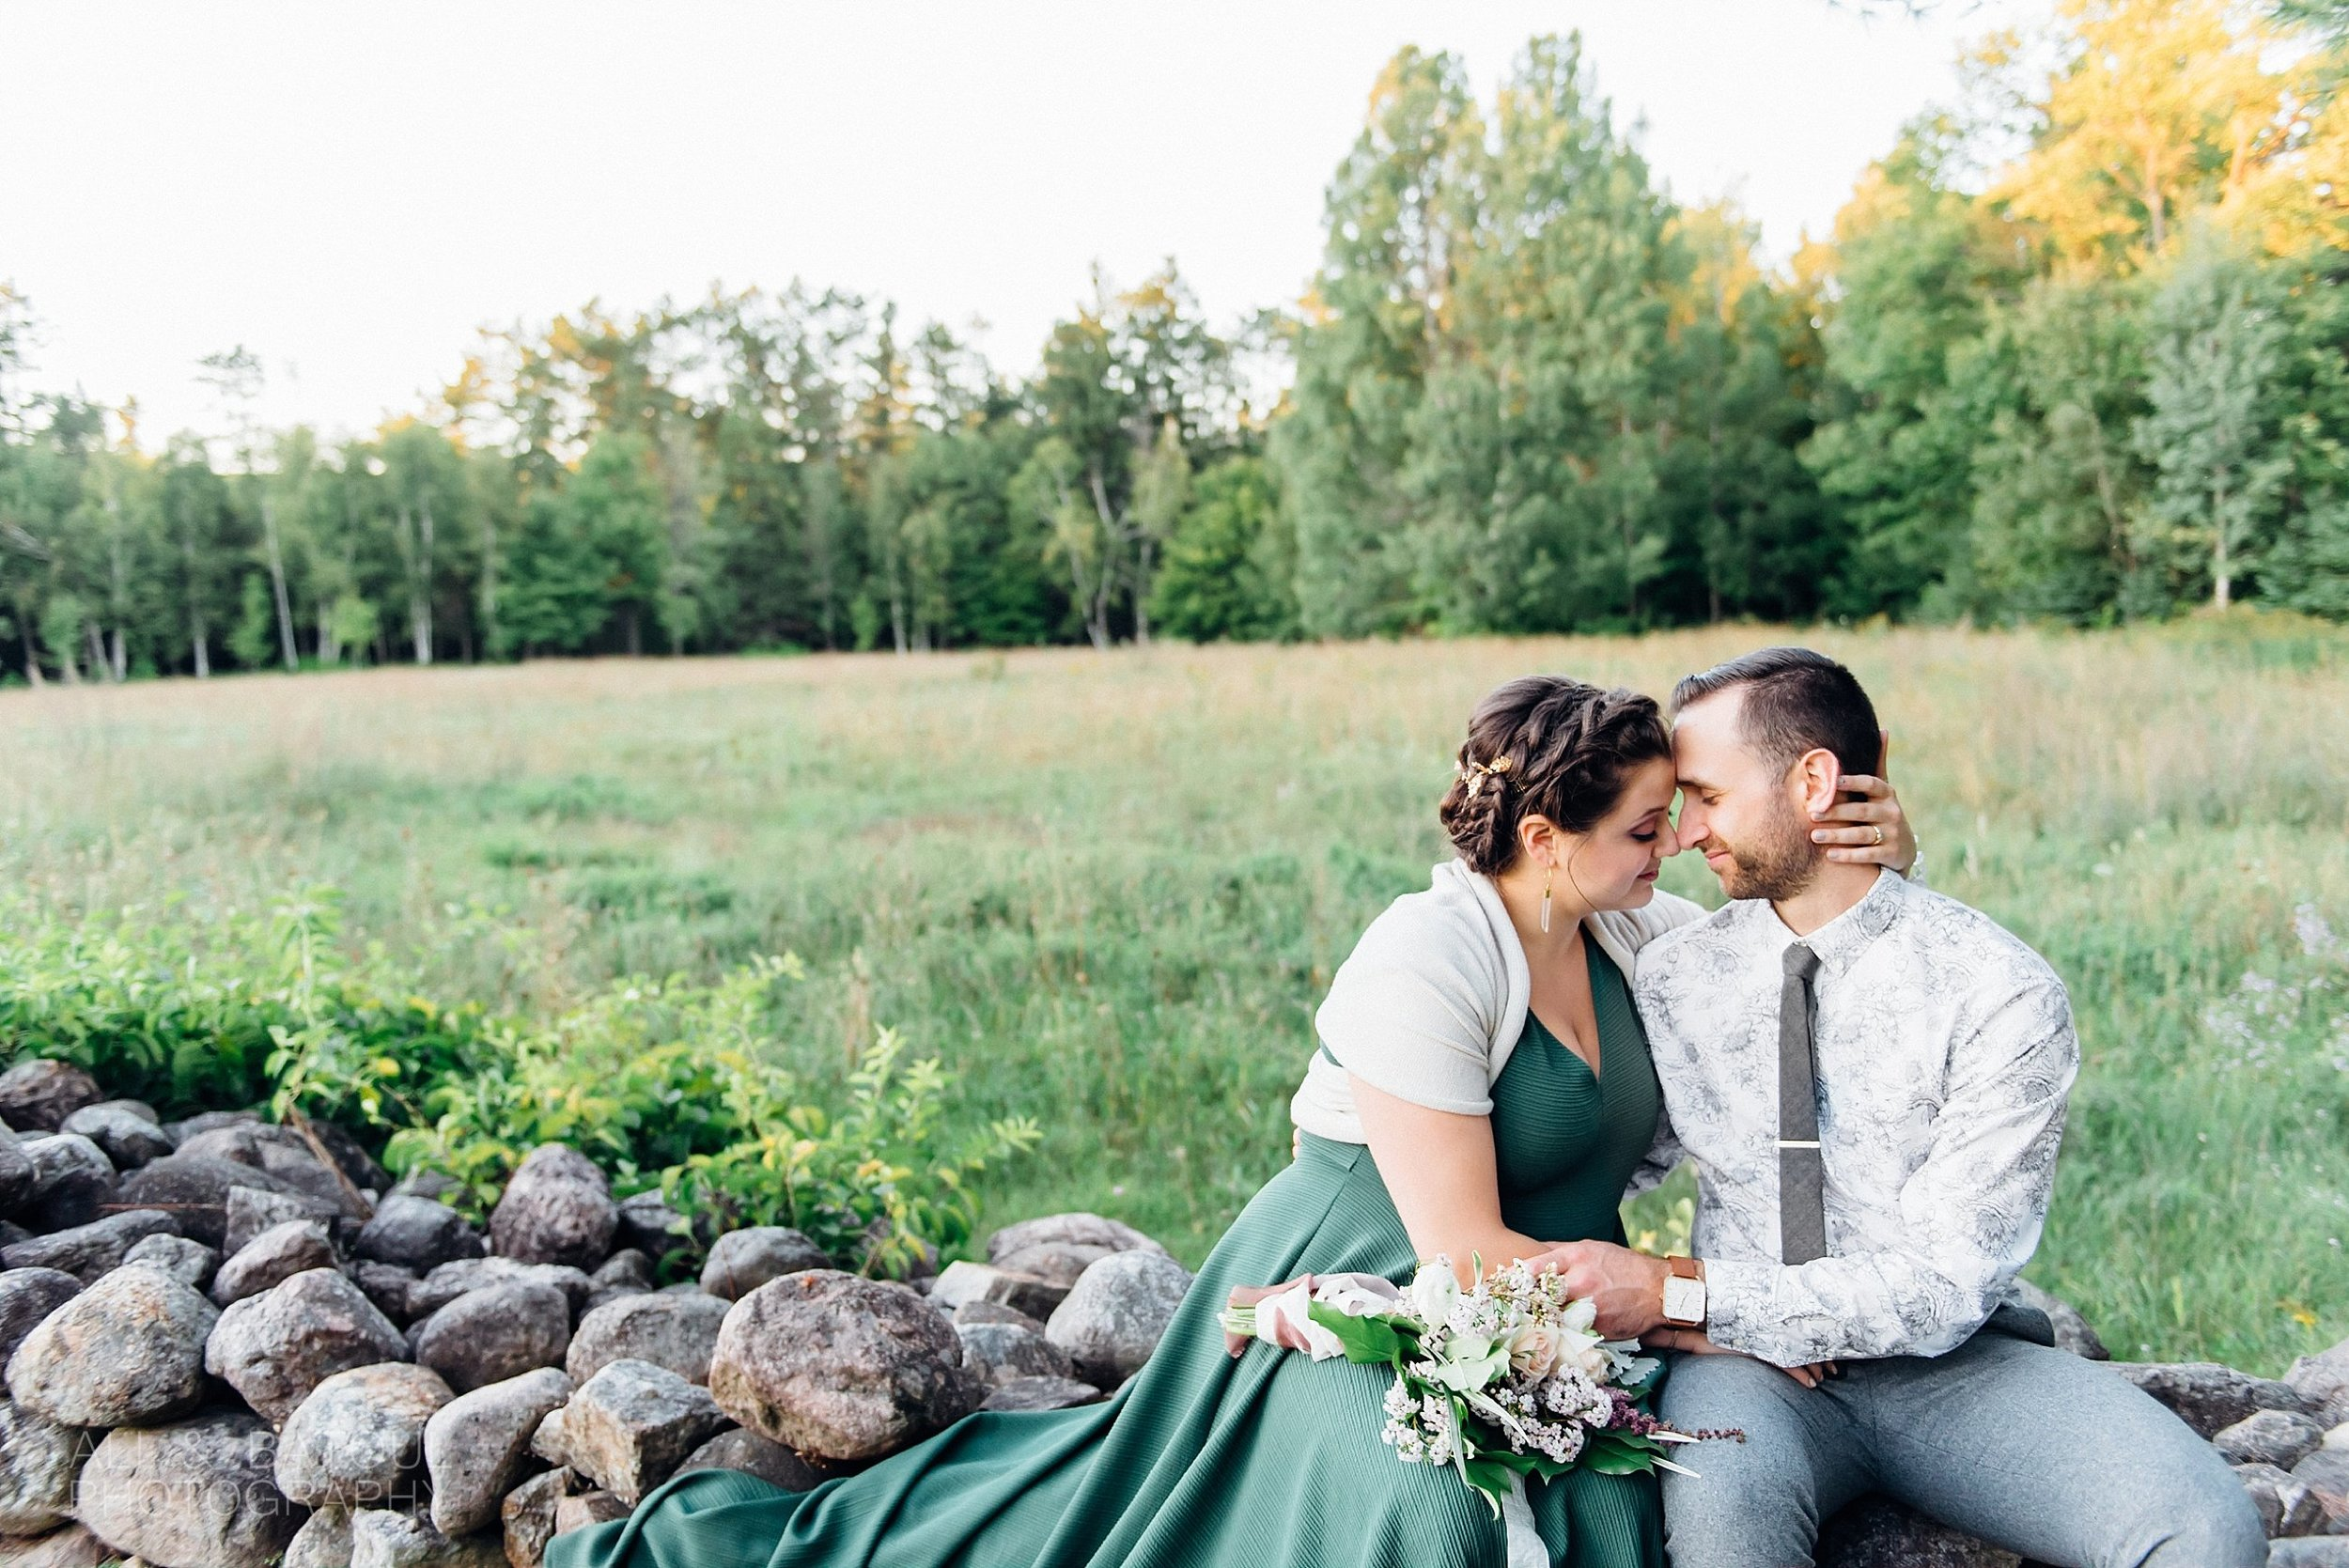 Ali and Batoul Photography - light, airy, indie documentary Ottawa wedding photographer_0085.jpg